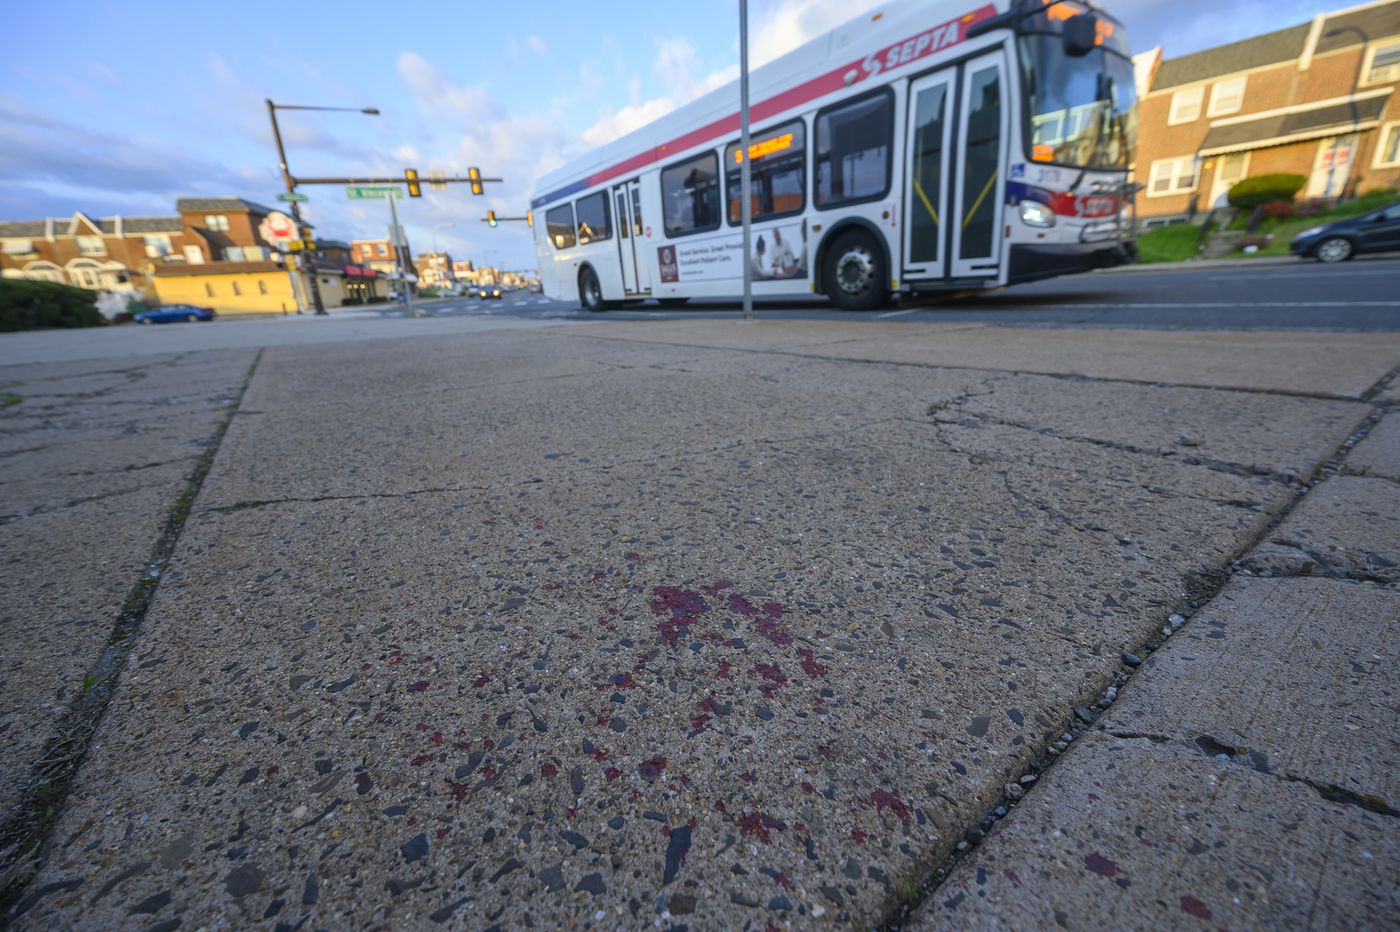 Cops: Man says he shot 3 teens on SEPTA bus in Northeast Philly in self-defense